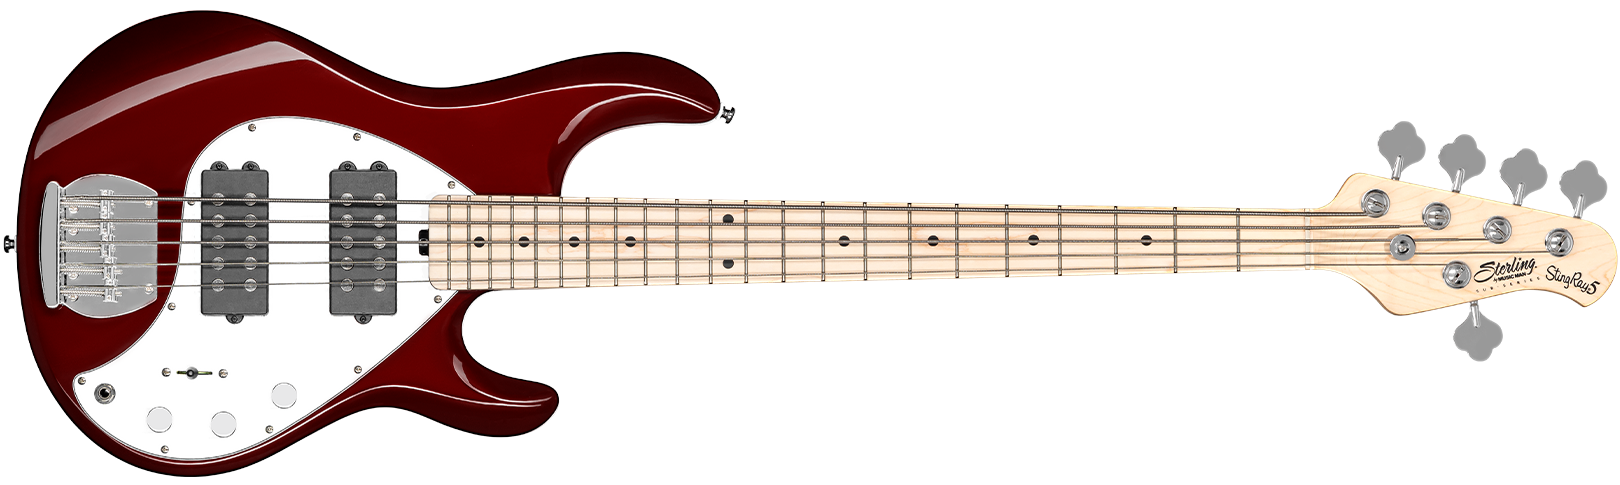 The StingRay Ray5HH bass in Candy Apple Red front details.